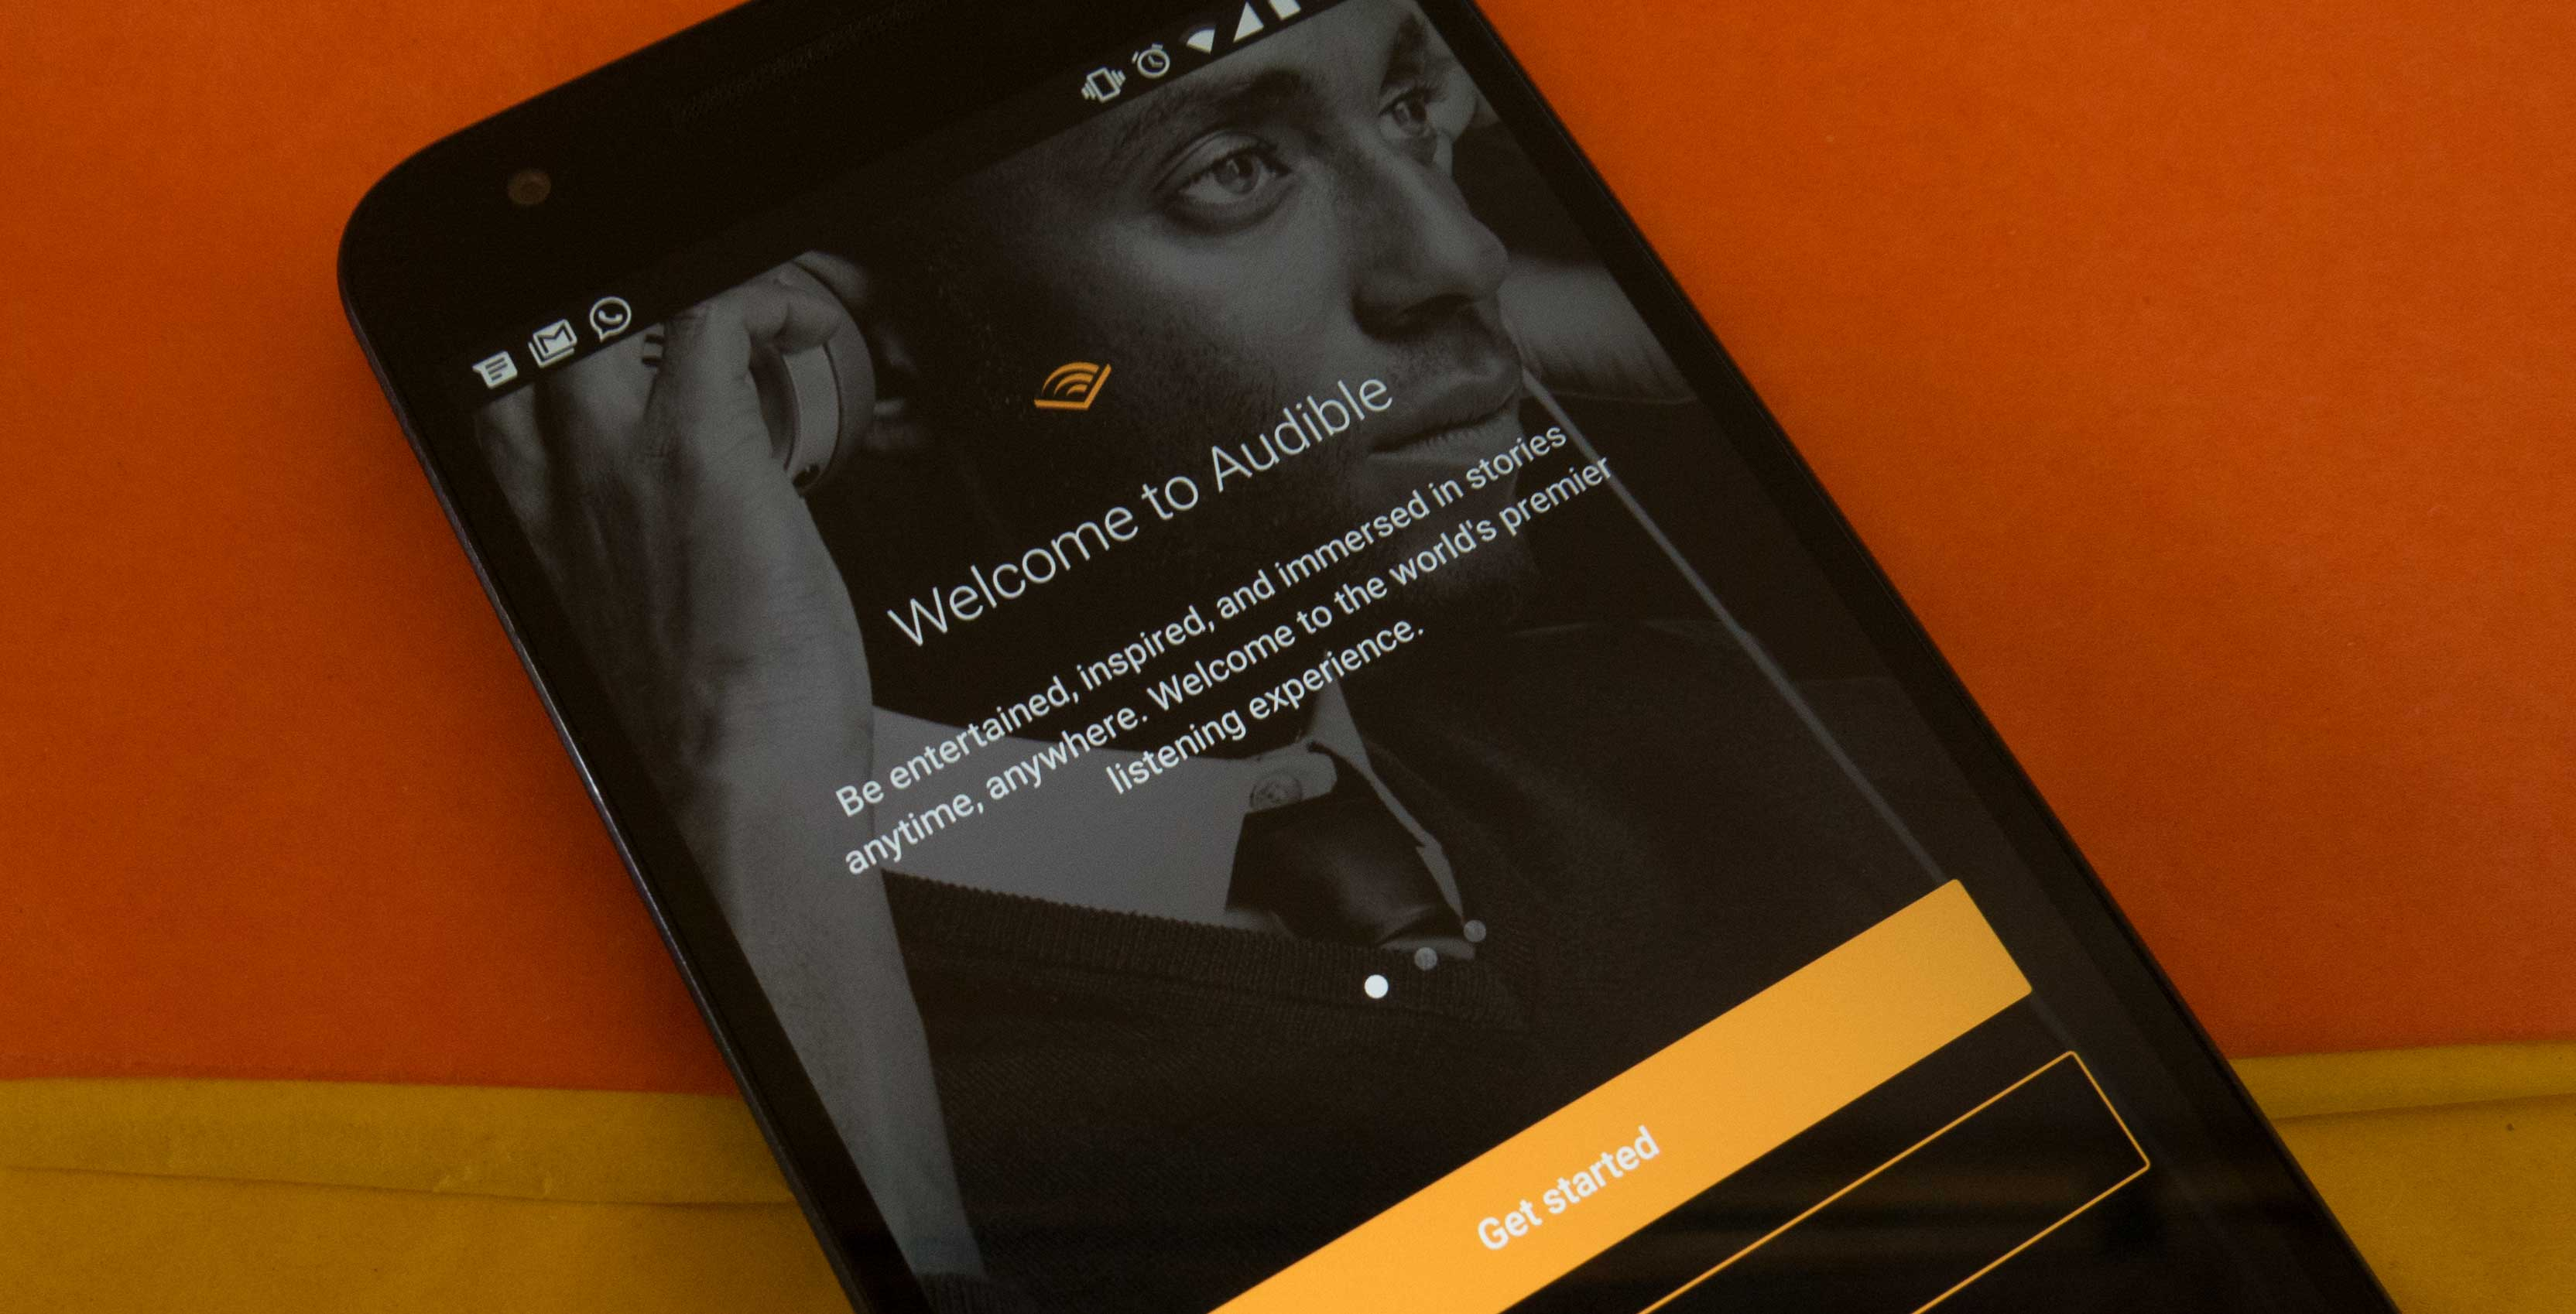 An image of the Audible login page